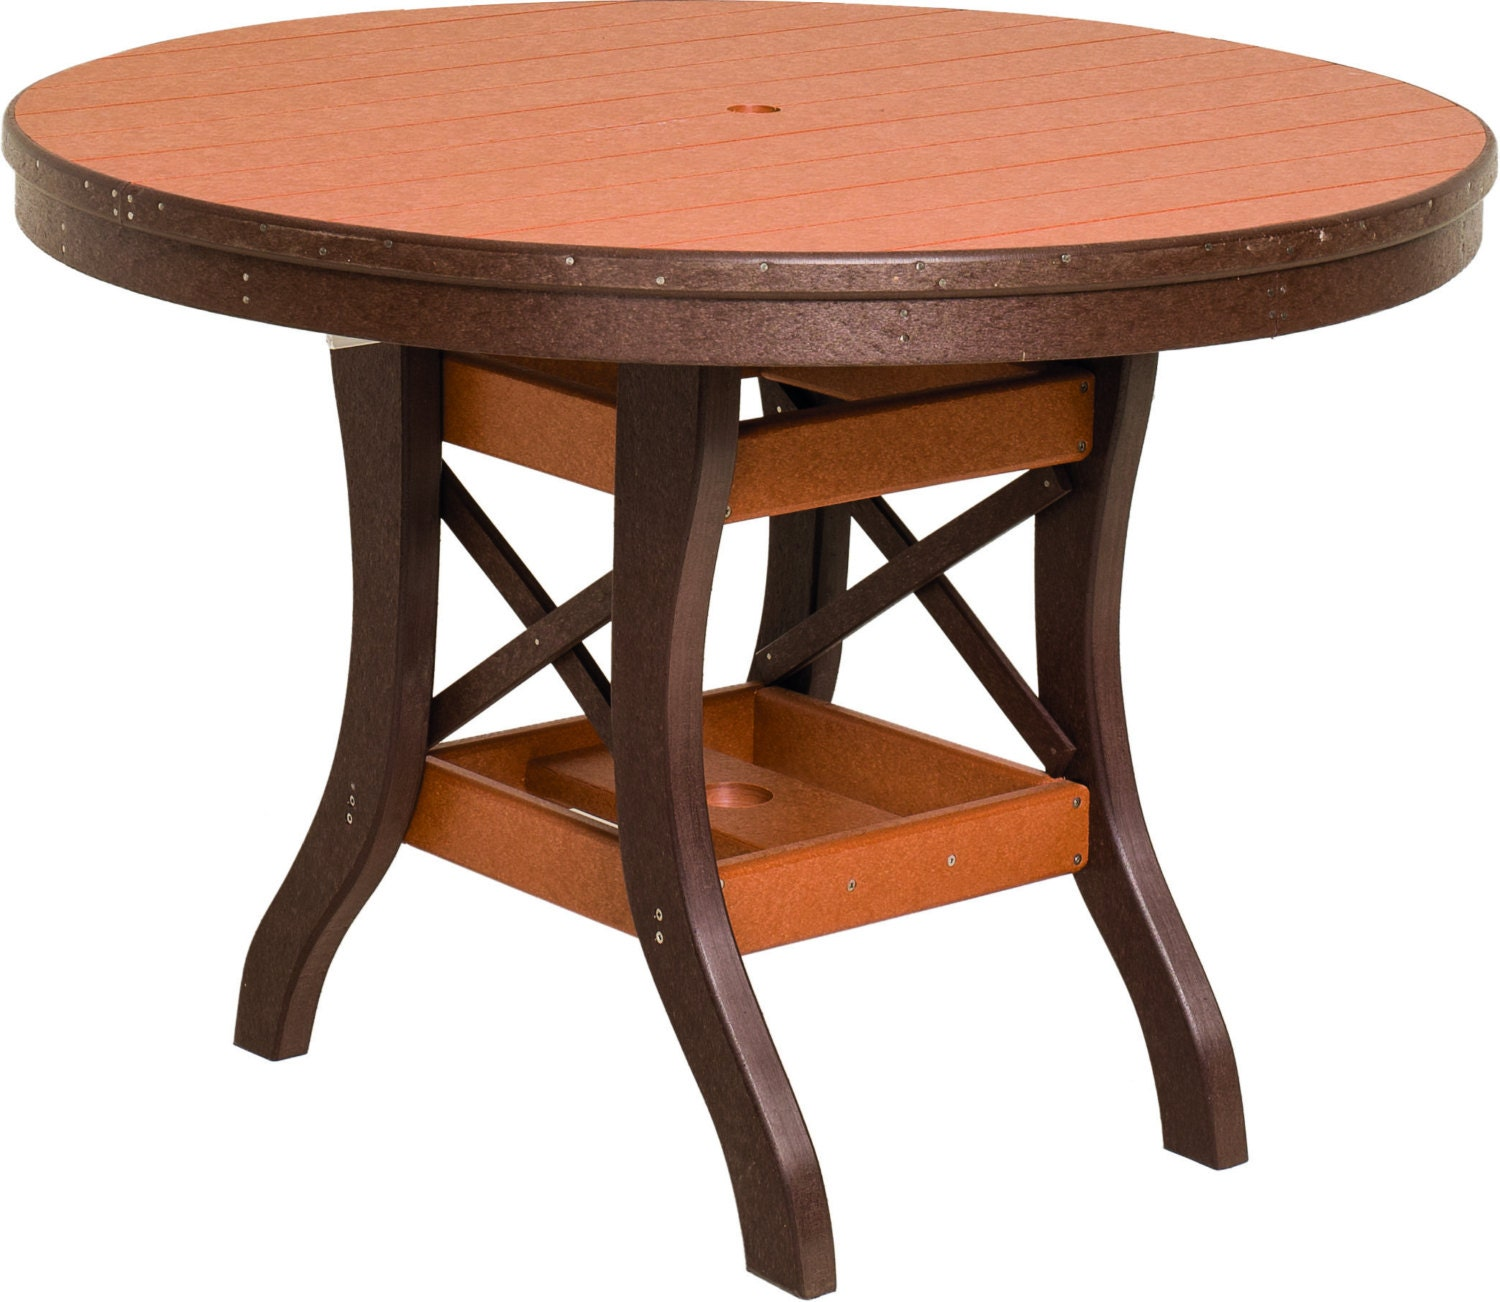 Recycled poly lumber round diningtable 36 44 48 54 for 44 inch round dining table